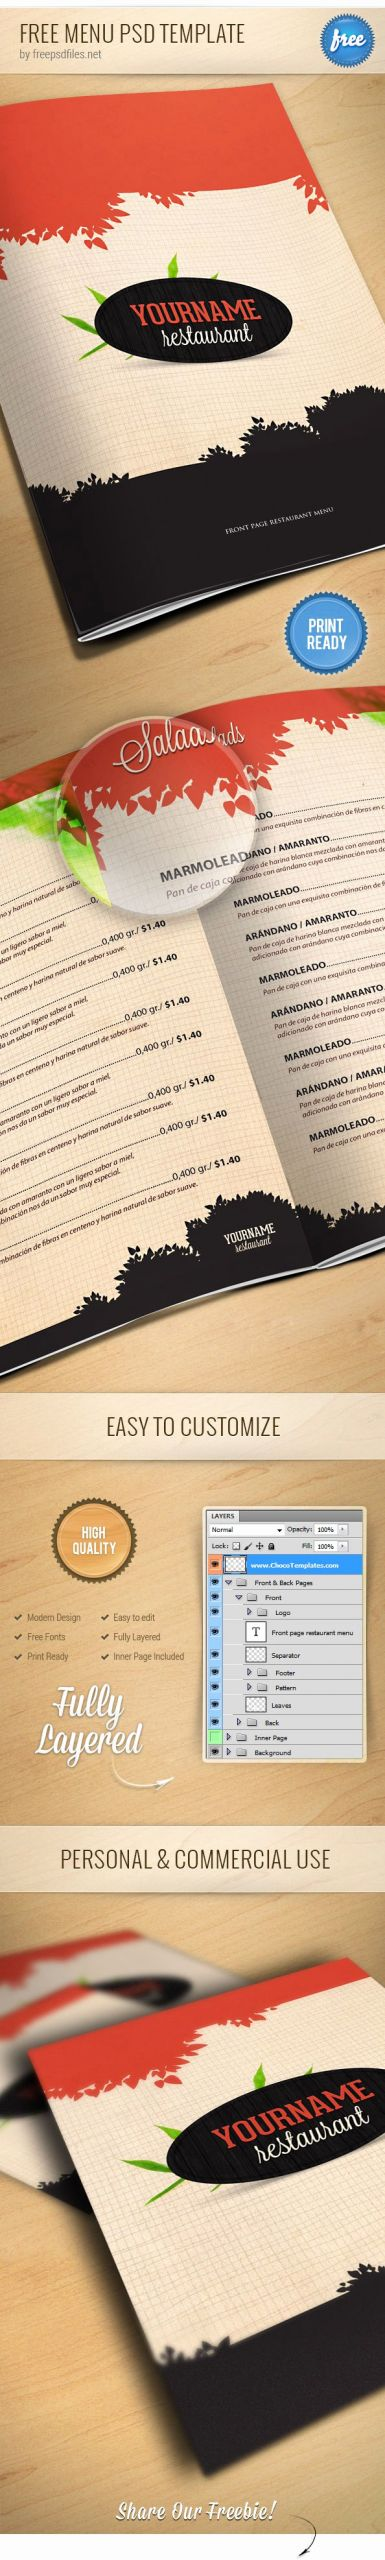 Restaurant Menu Template Psd Inspirational Restaurant Menu Psd Template Free Psd Files